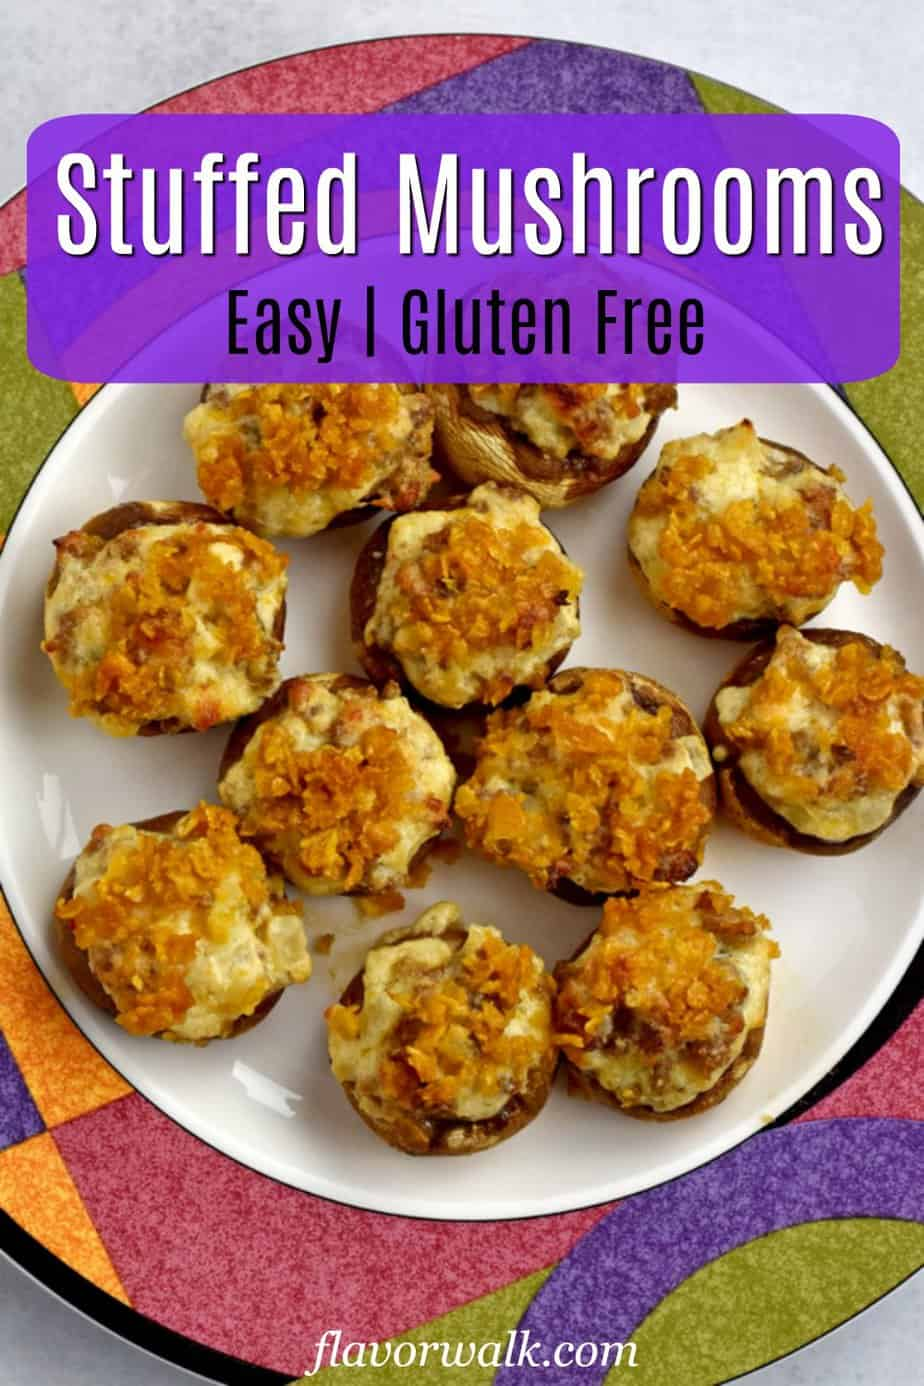 Overhead view of white plate with colorful edge filled with gluten free stuffed mushrooms with purple text overlay near top.